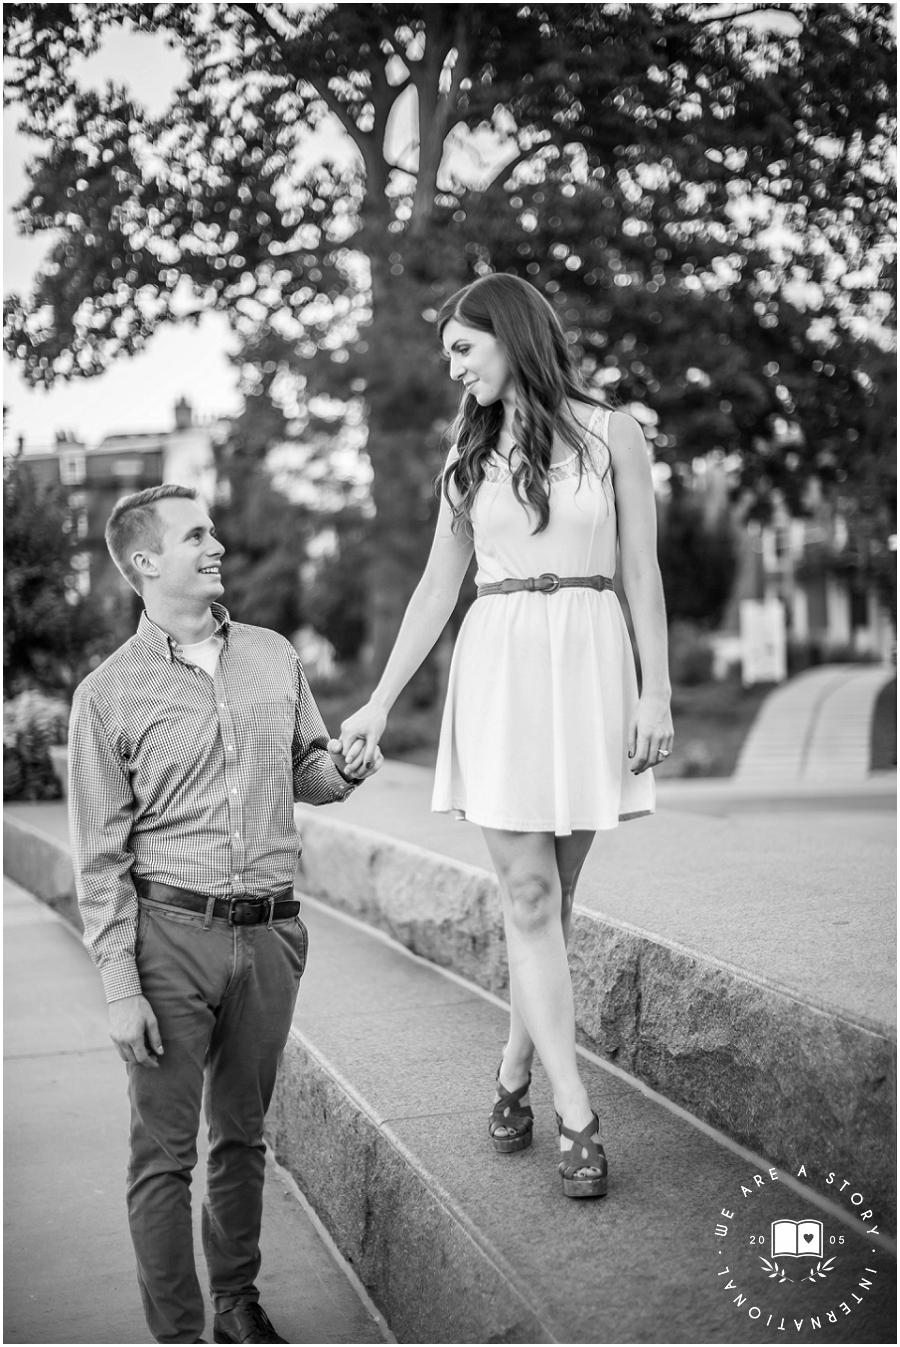 cincinnati-engagement-wedding-photographer-washington-park-otr-engagement-photos-www-weareastory-com_2310